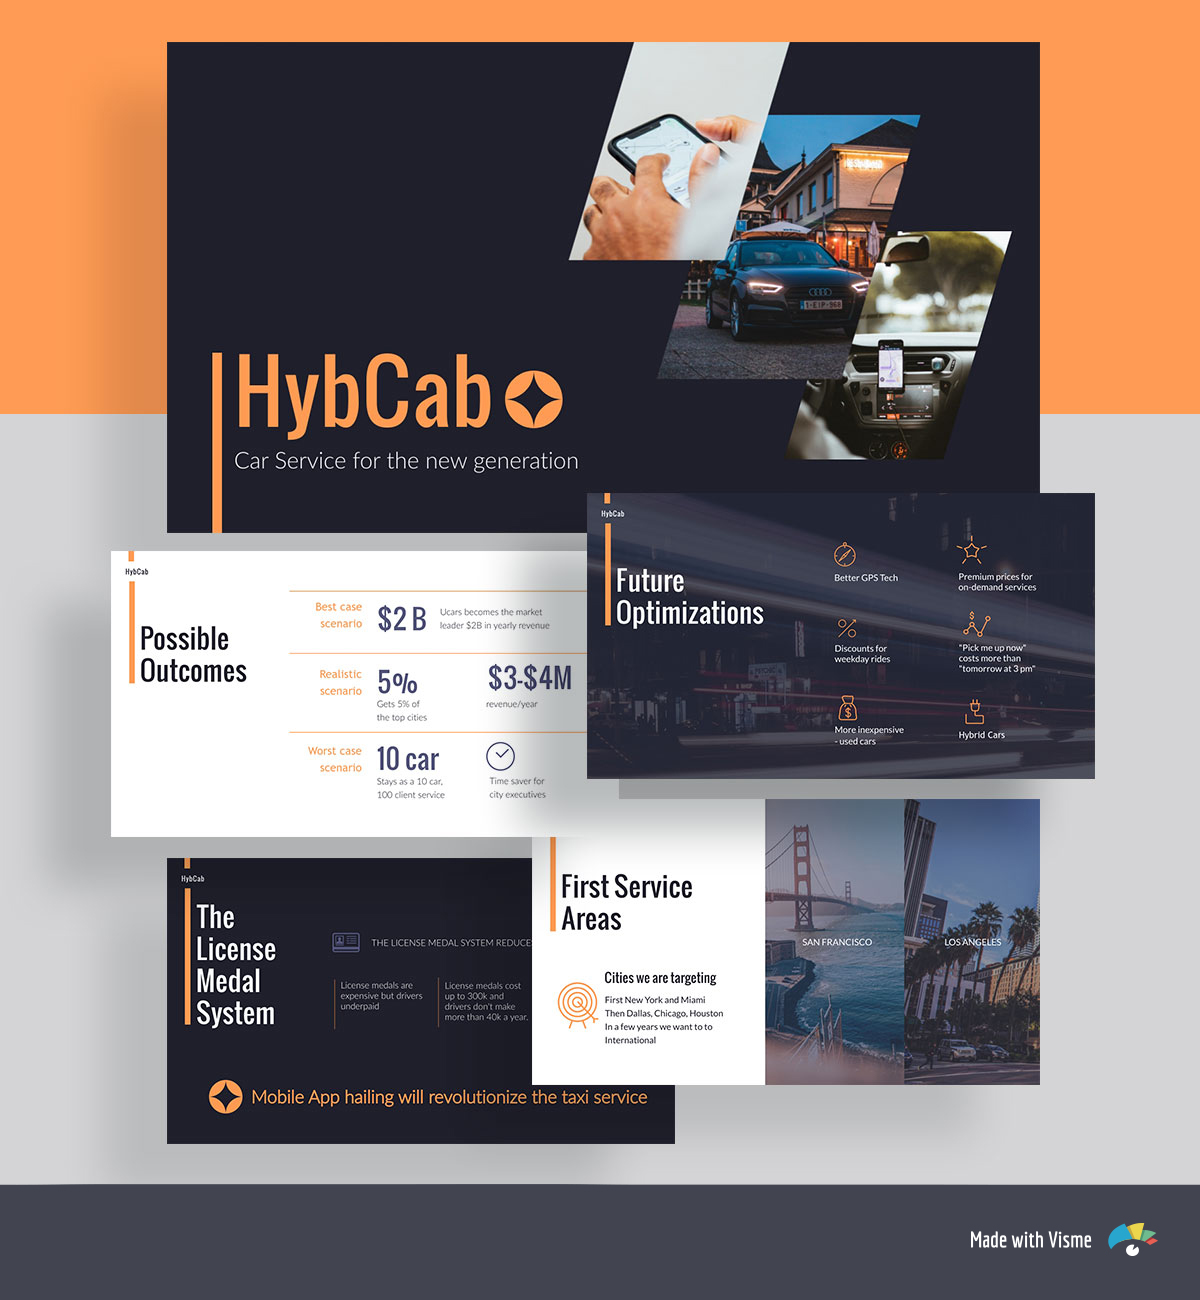 pitch deck design - hybcab pitch deck template